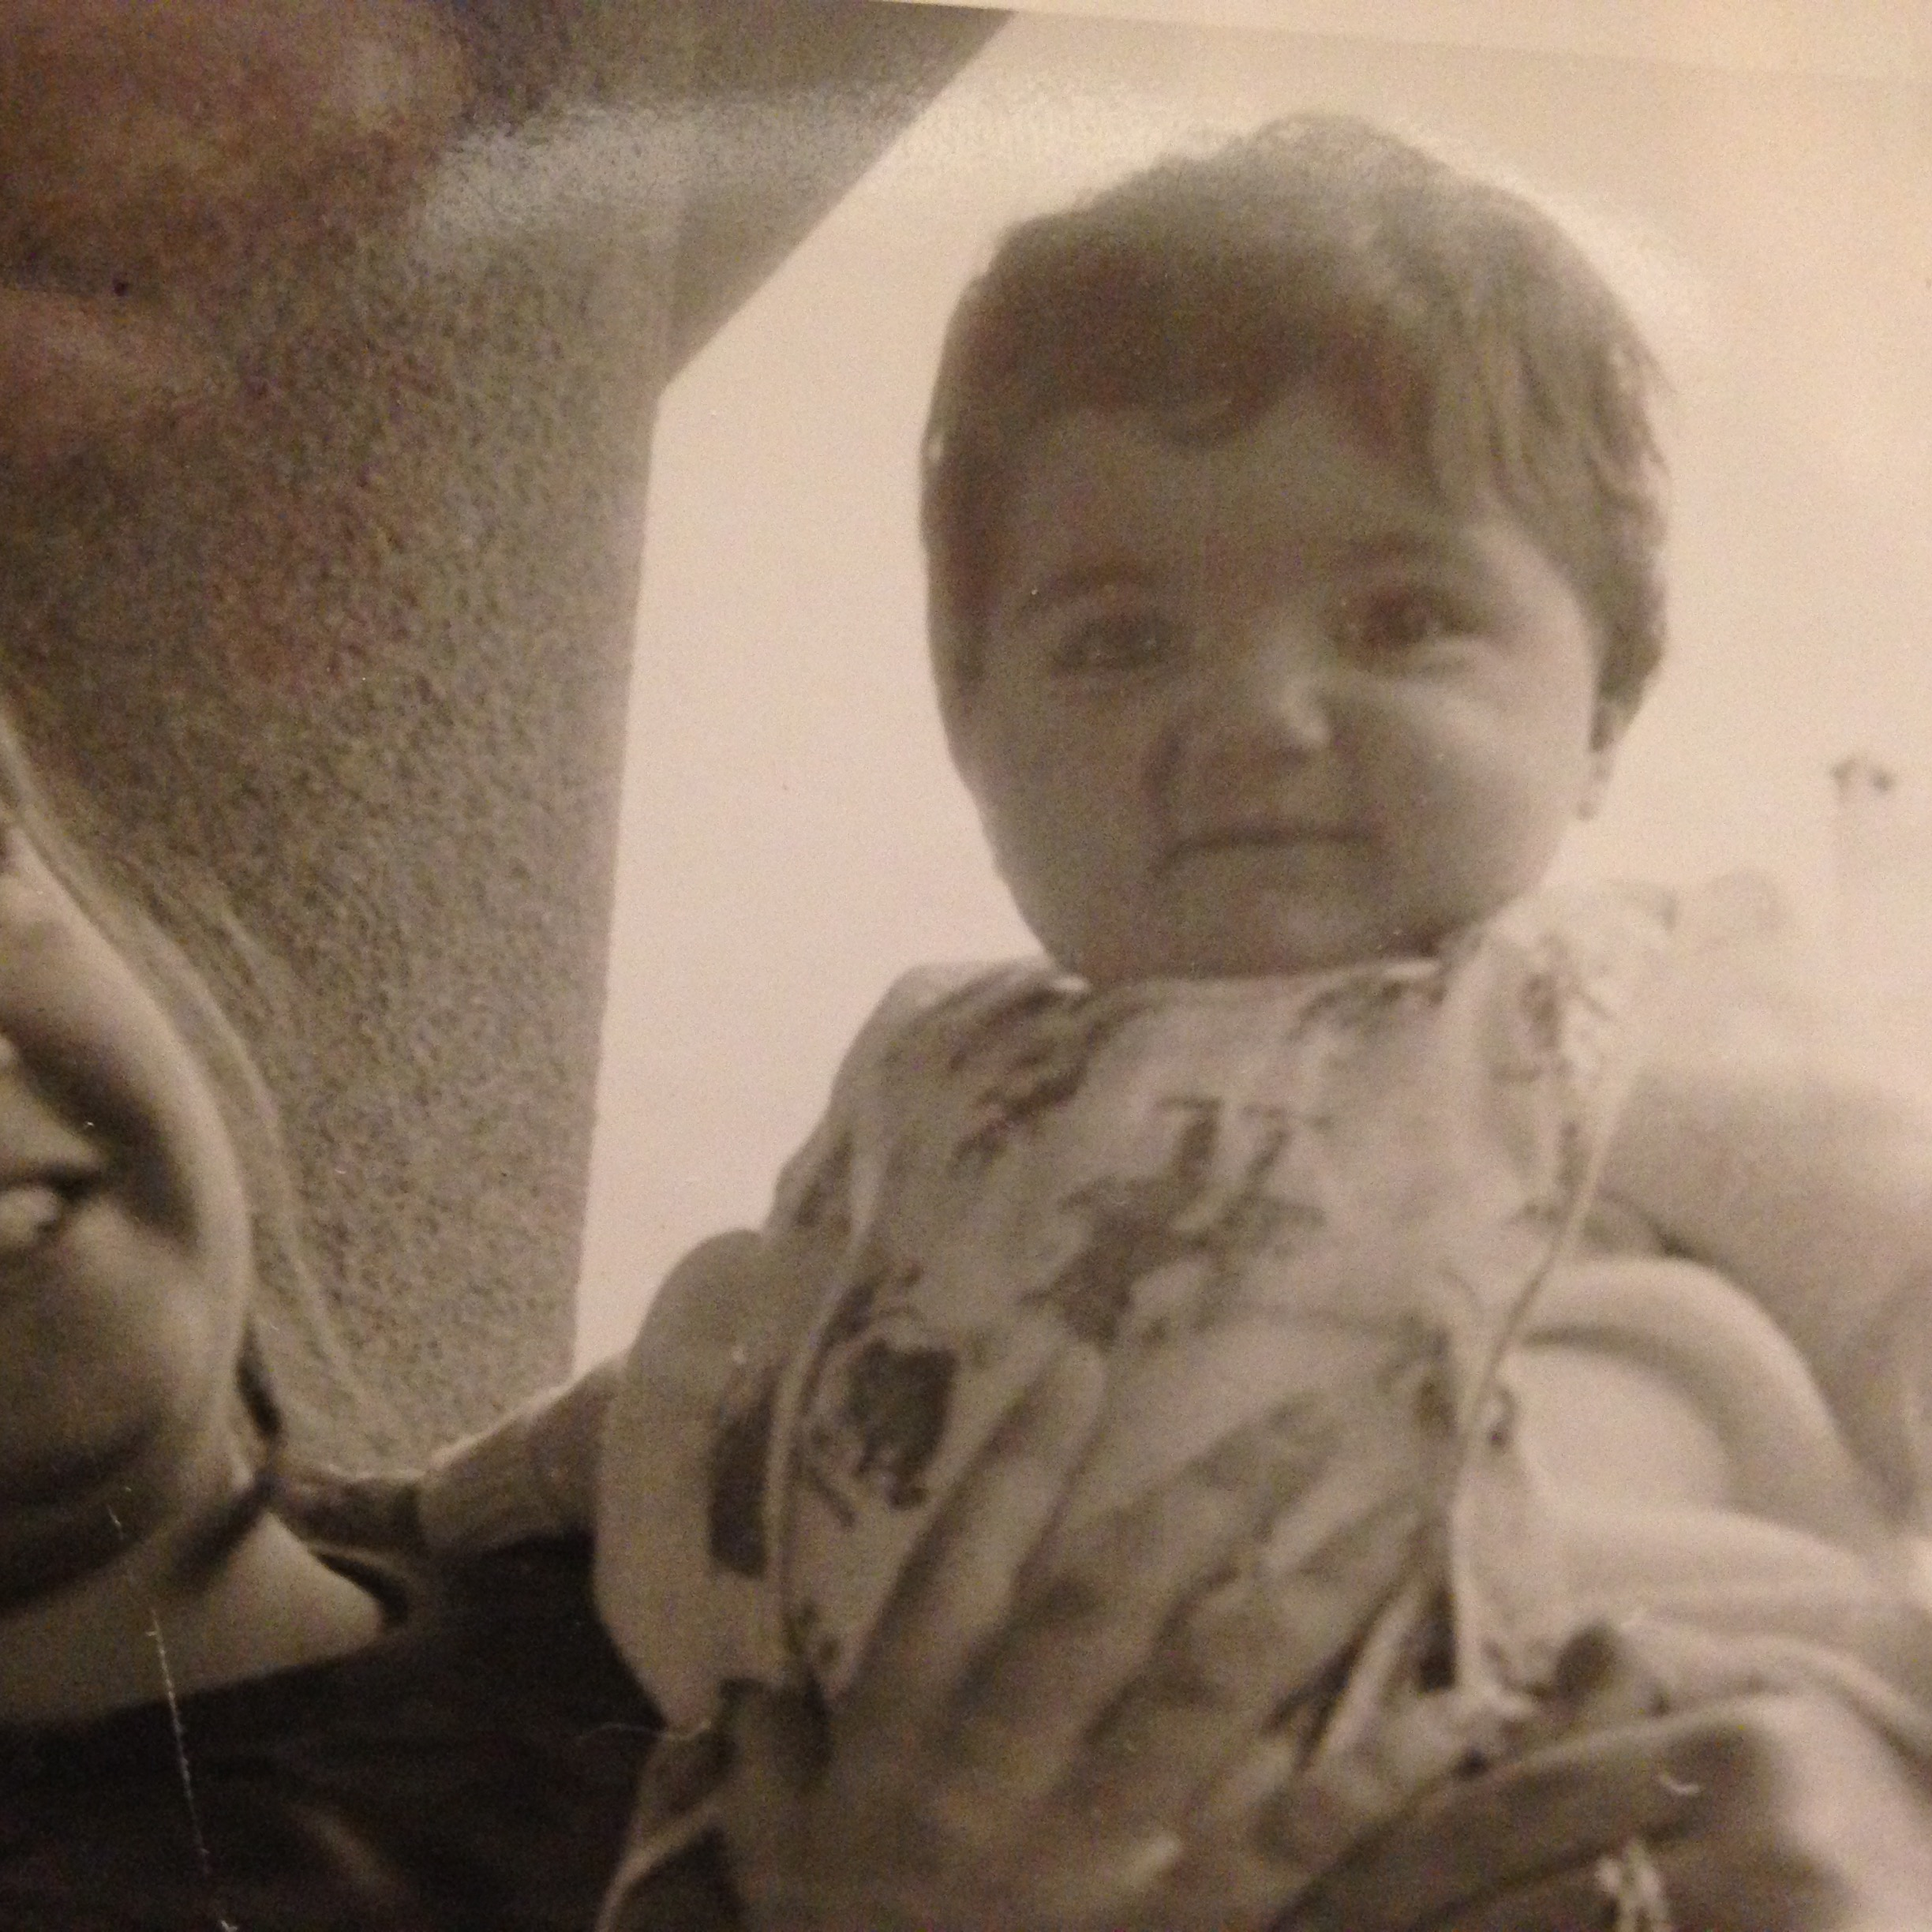 Me at 5 months old,in my mom's hands.